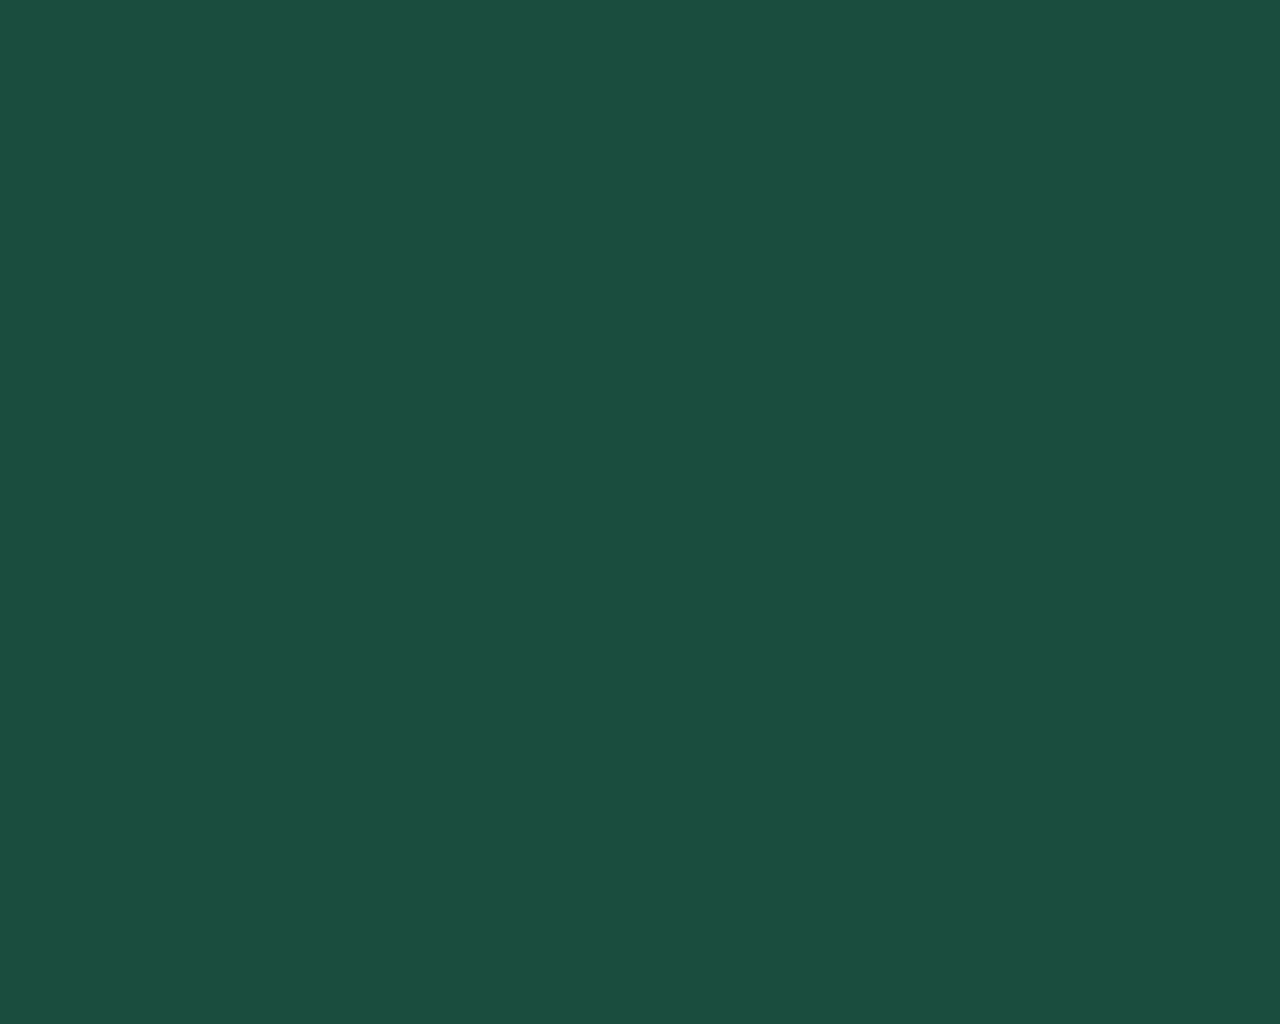 1280x1024 Brunswick Green Solid Color Background